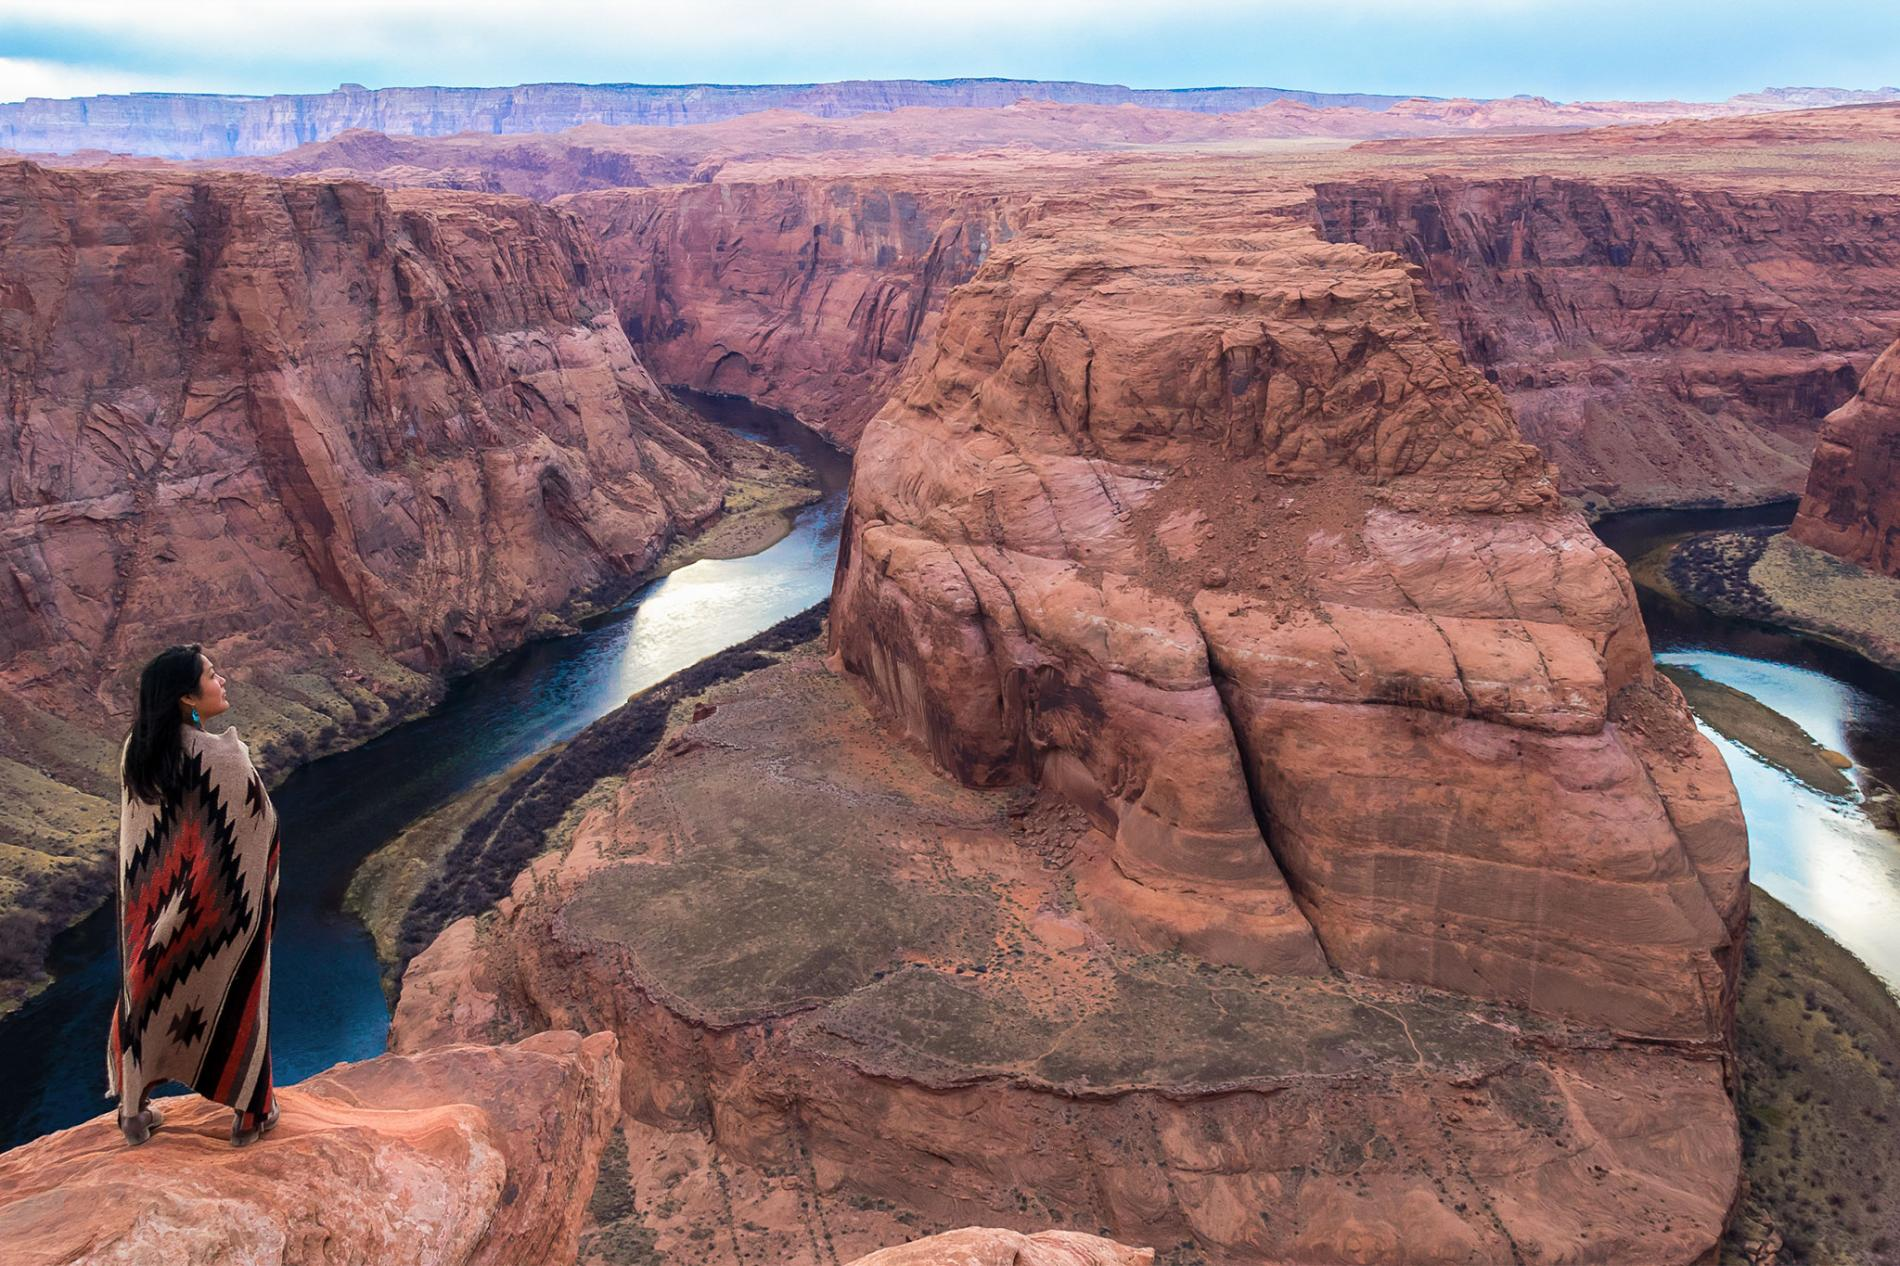 Jaylyn Gough looks out over Horseshoe Bend, a Colorado River canyon that rests inside the Navajo Nation reservation. PHOTOGRAPH BY MARISSA SAINTS lutheran indian ministries native news